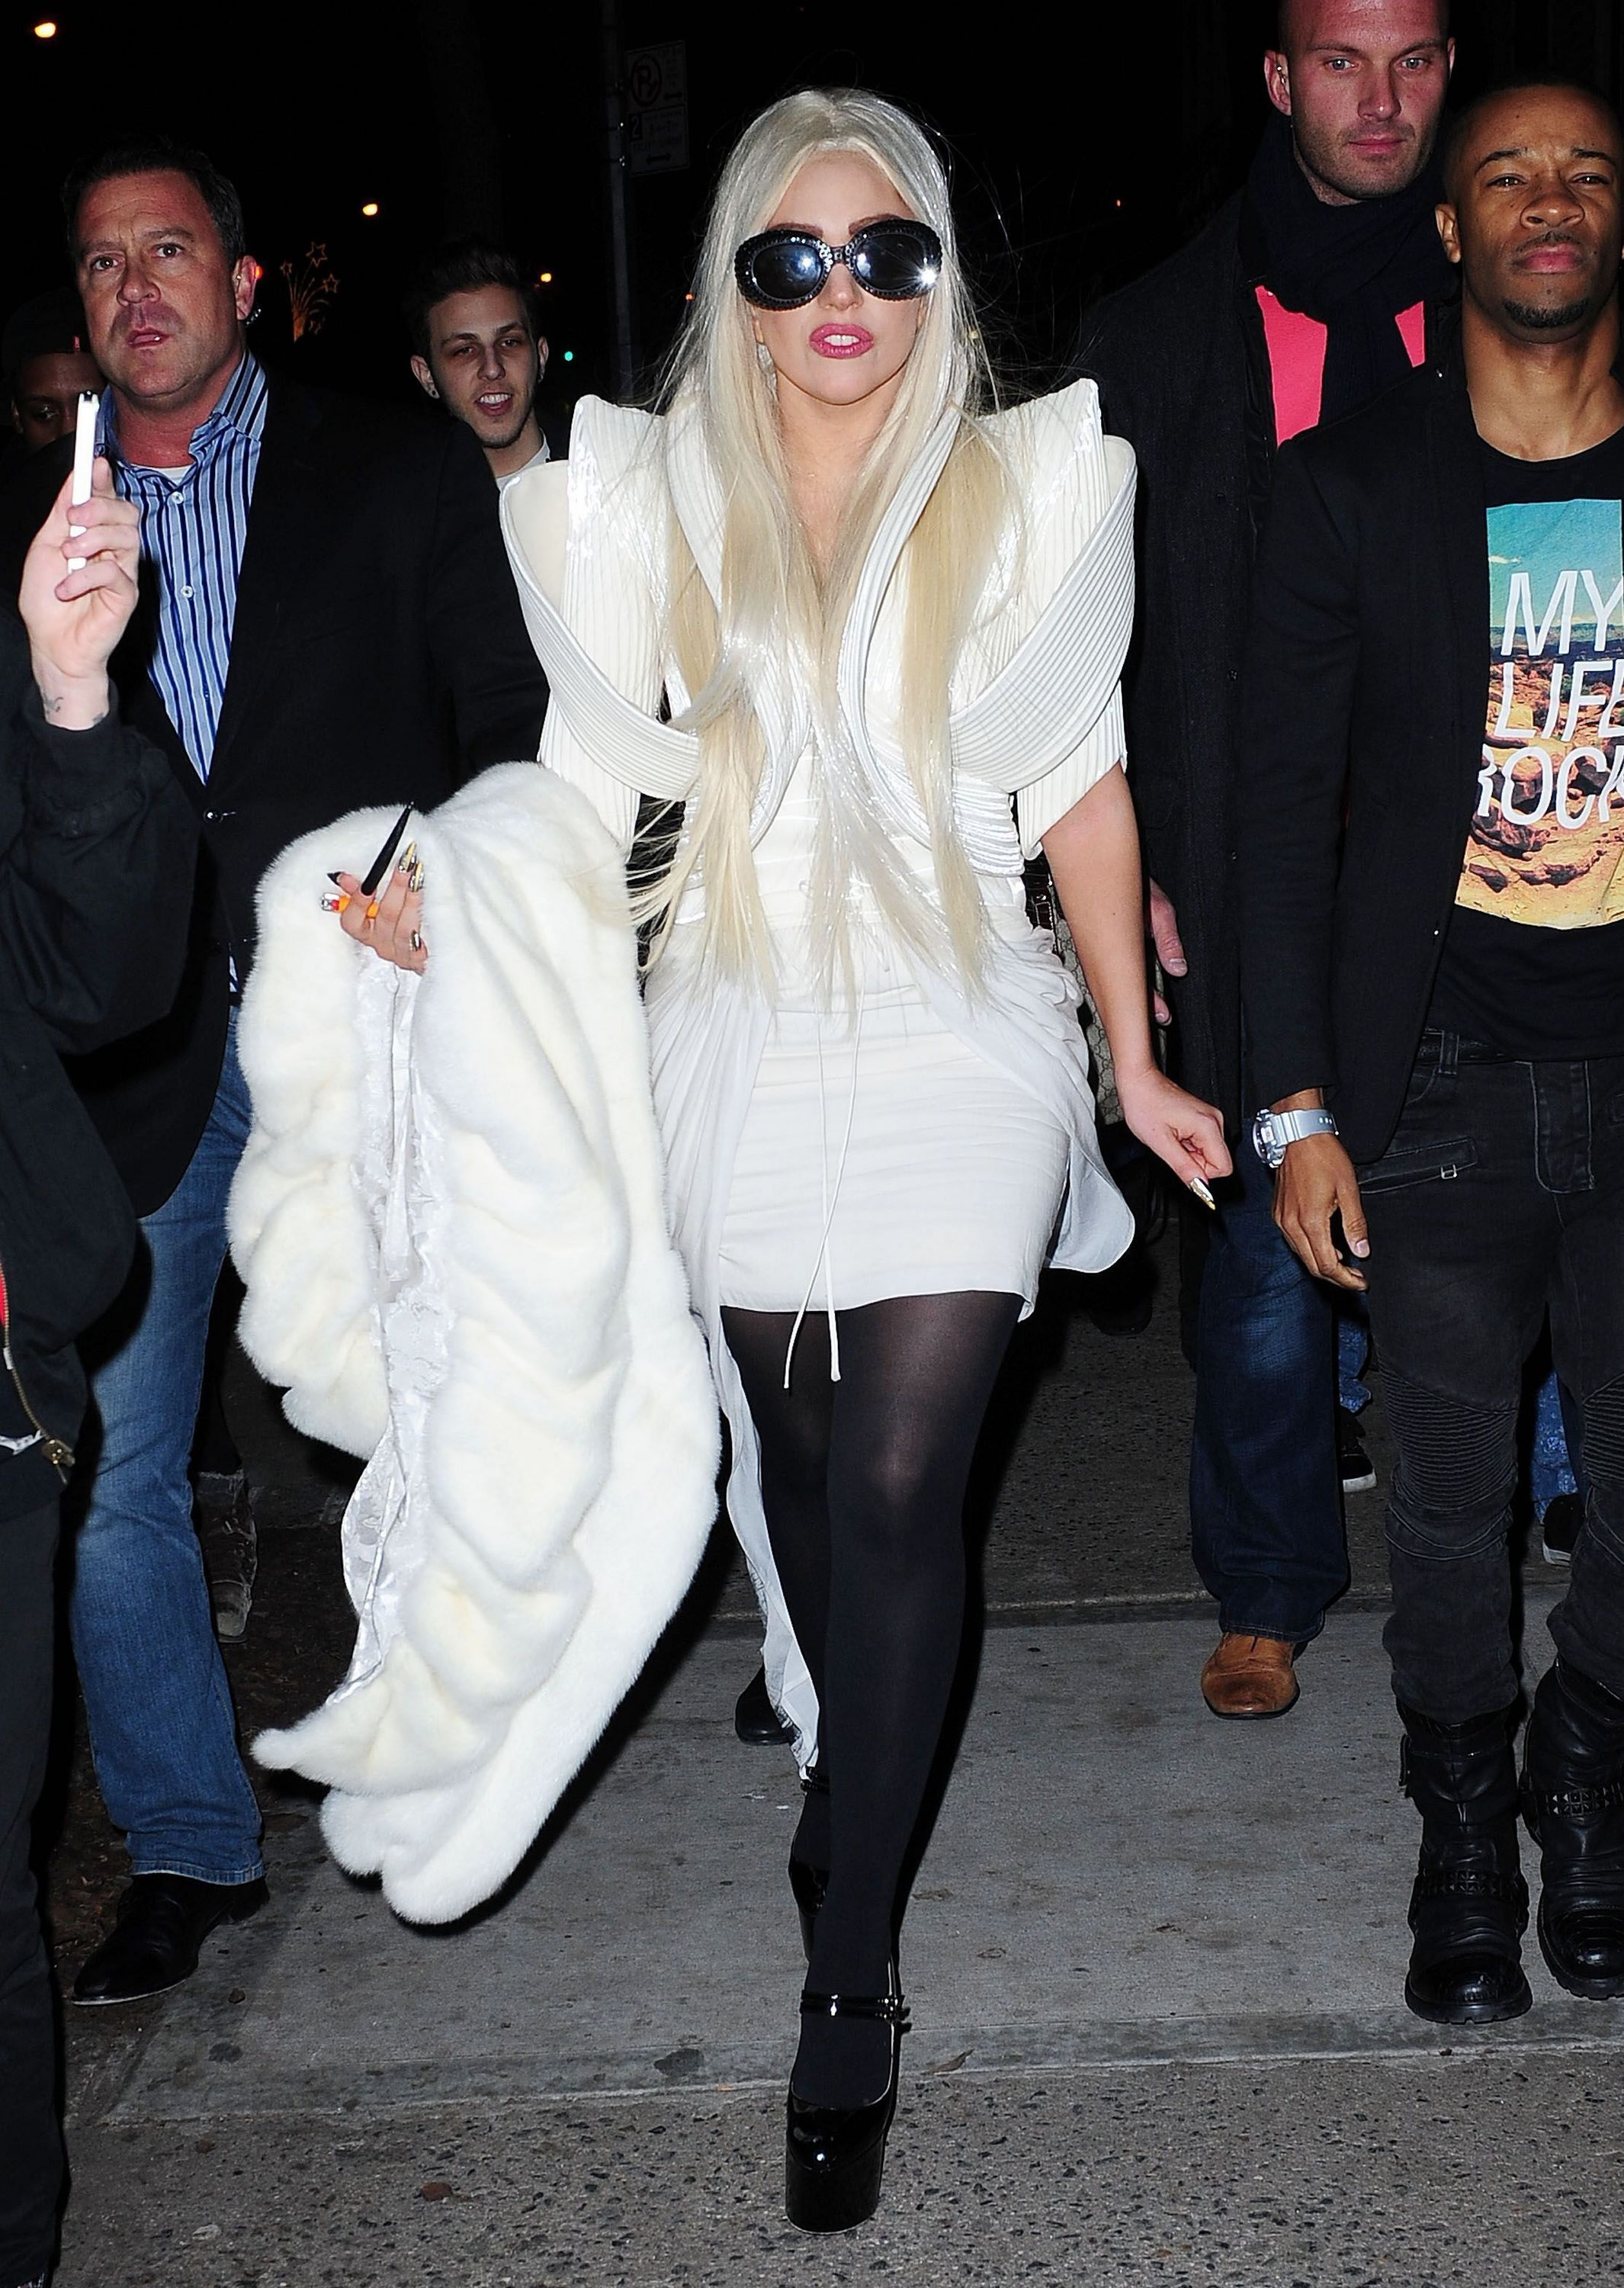 File:12-14-12 Out in New York after rehearsals 001.jpg